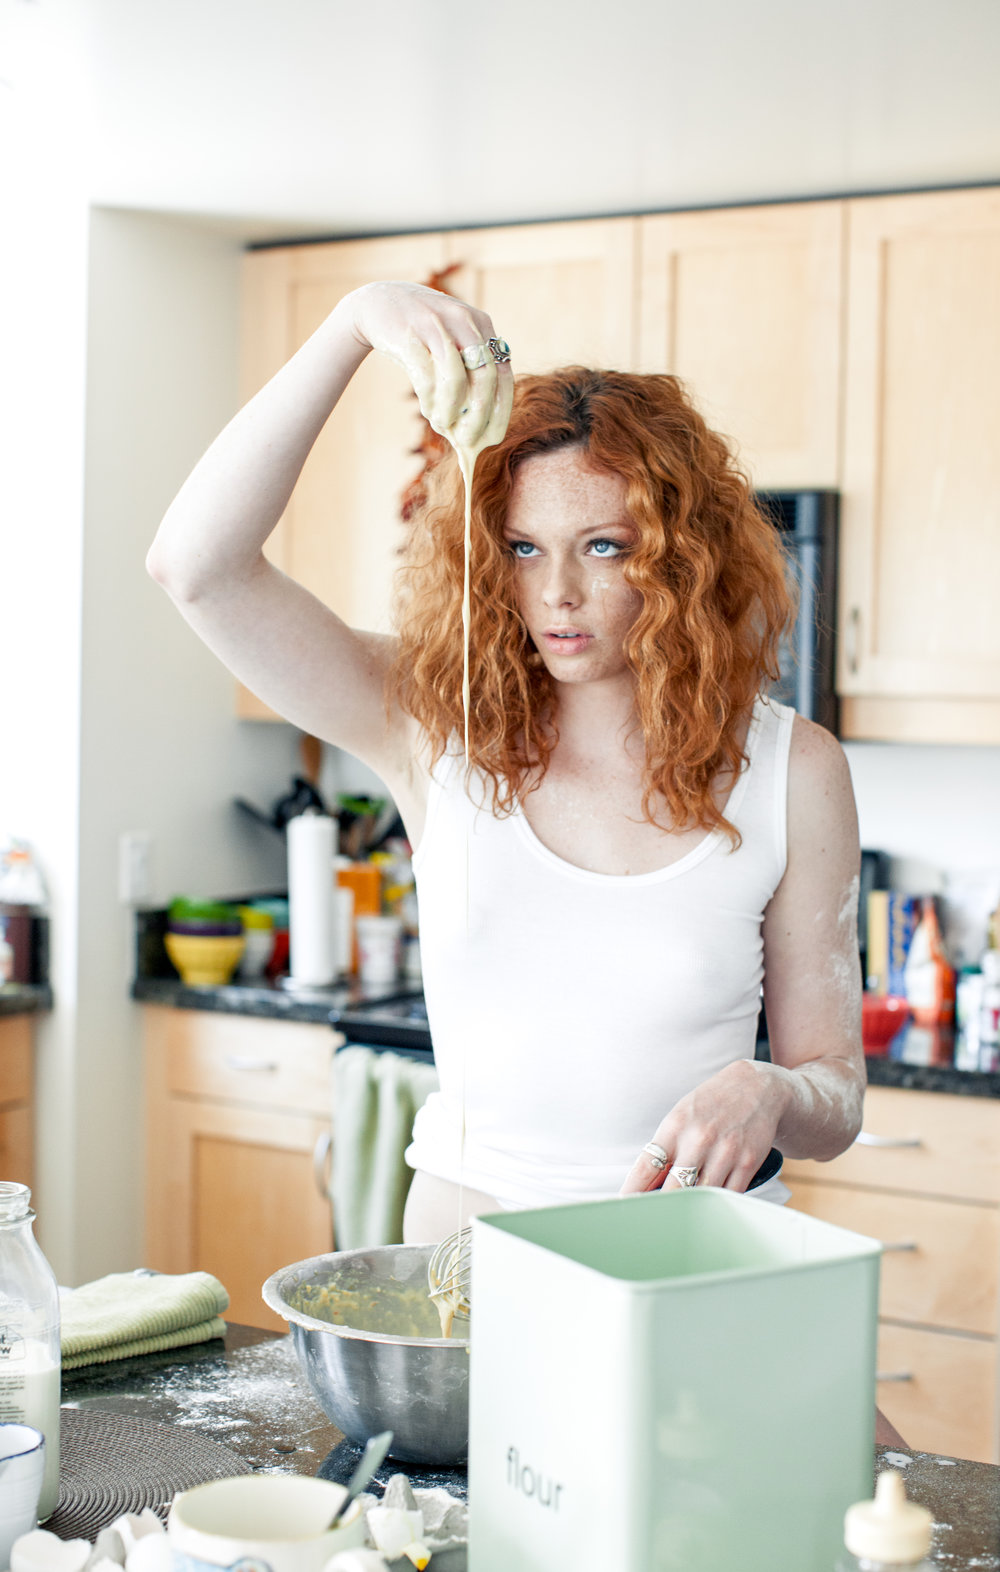 kate.vs.kitchen-26.jpg